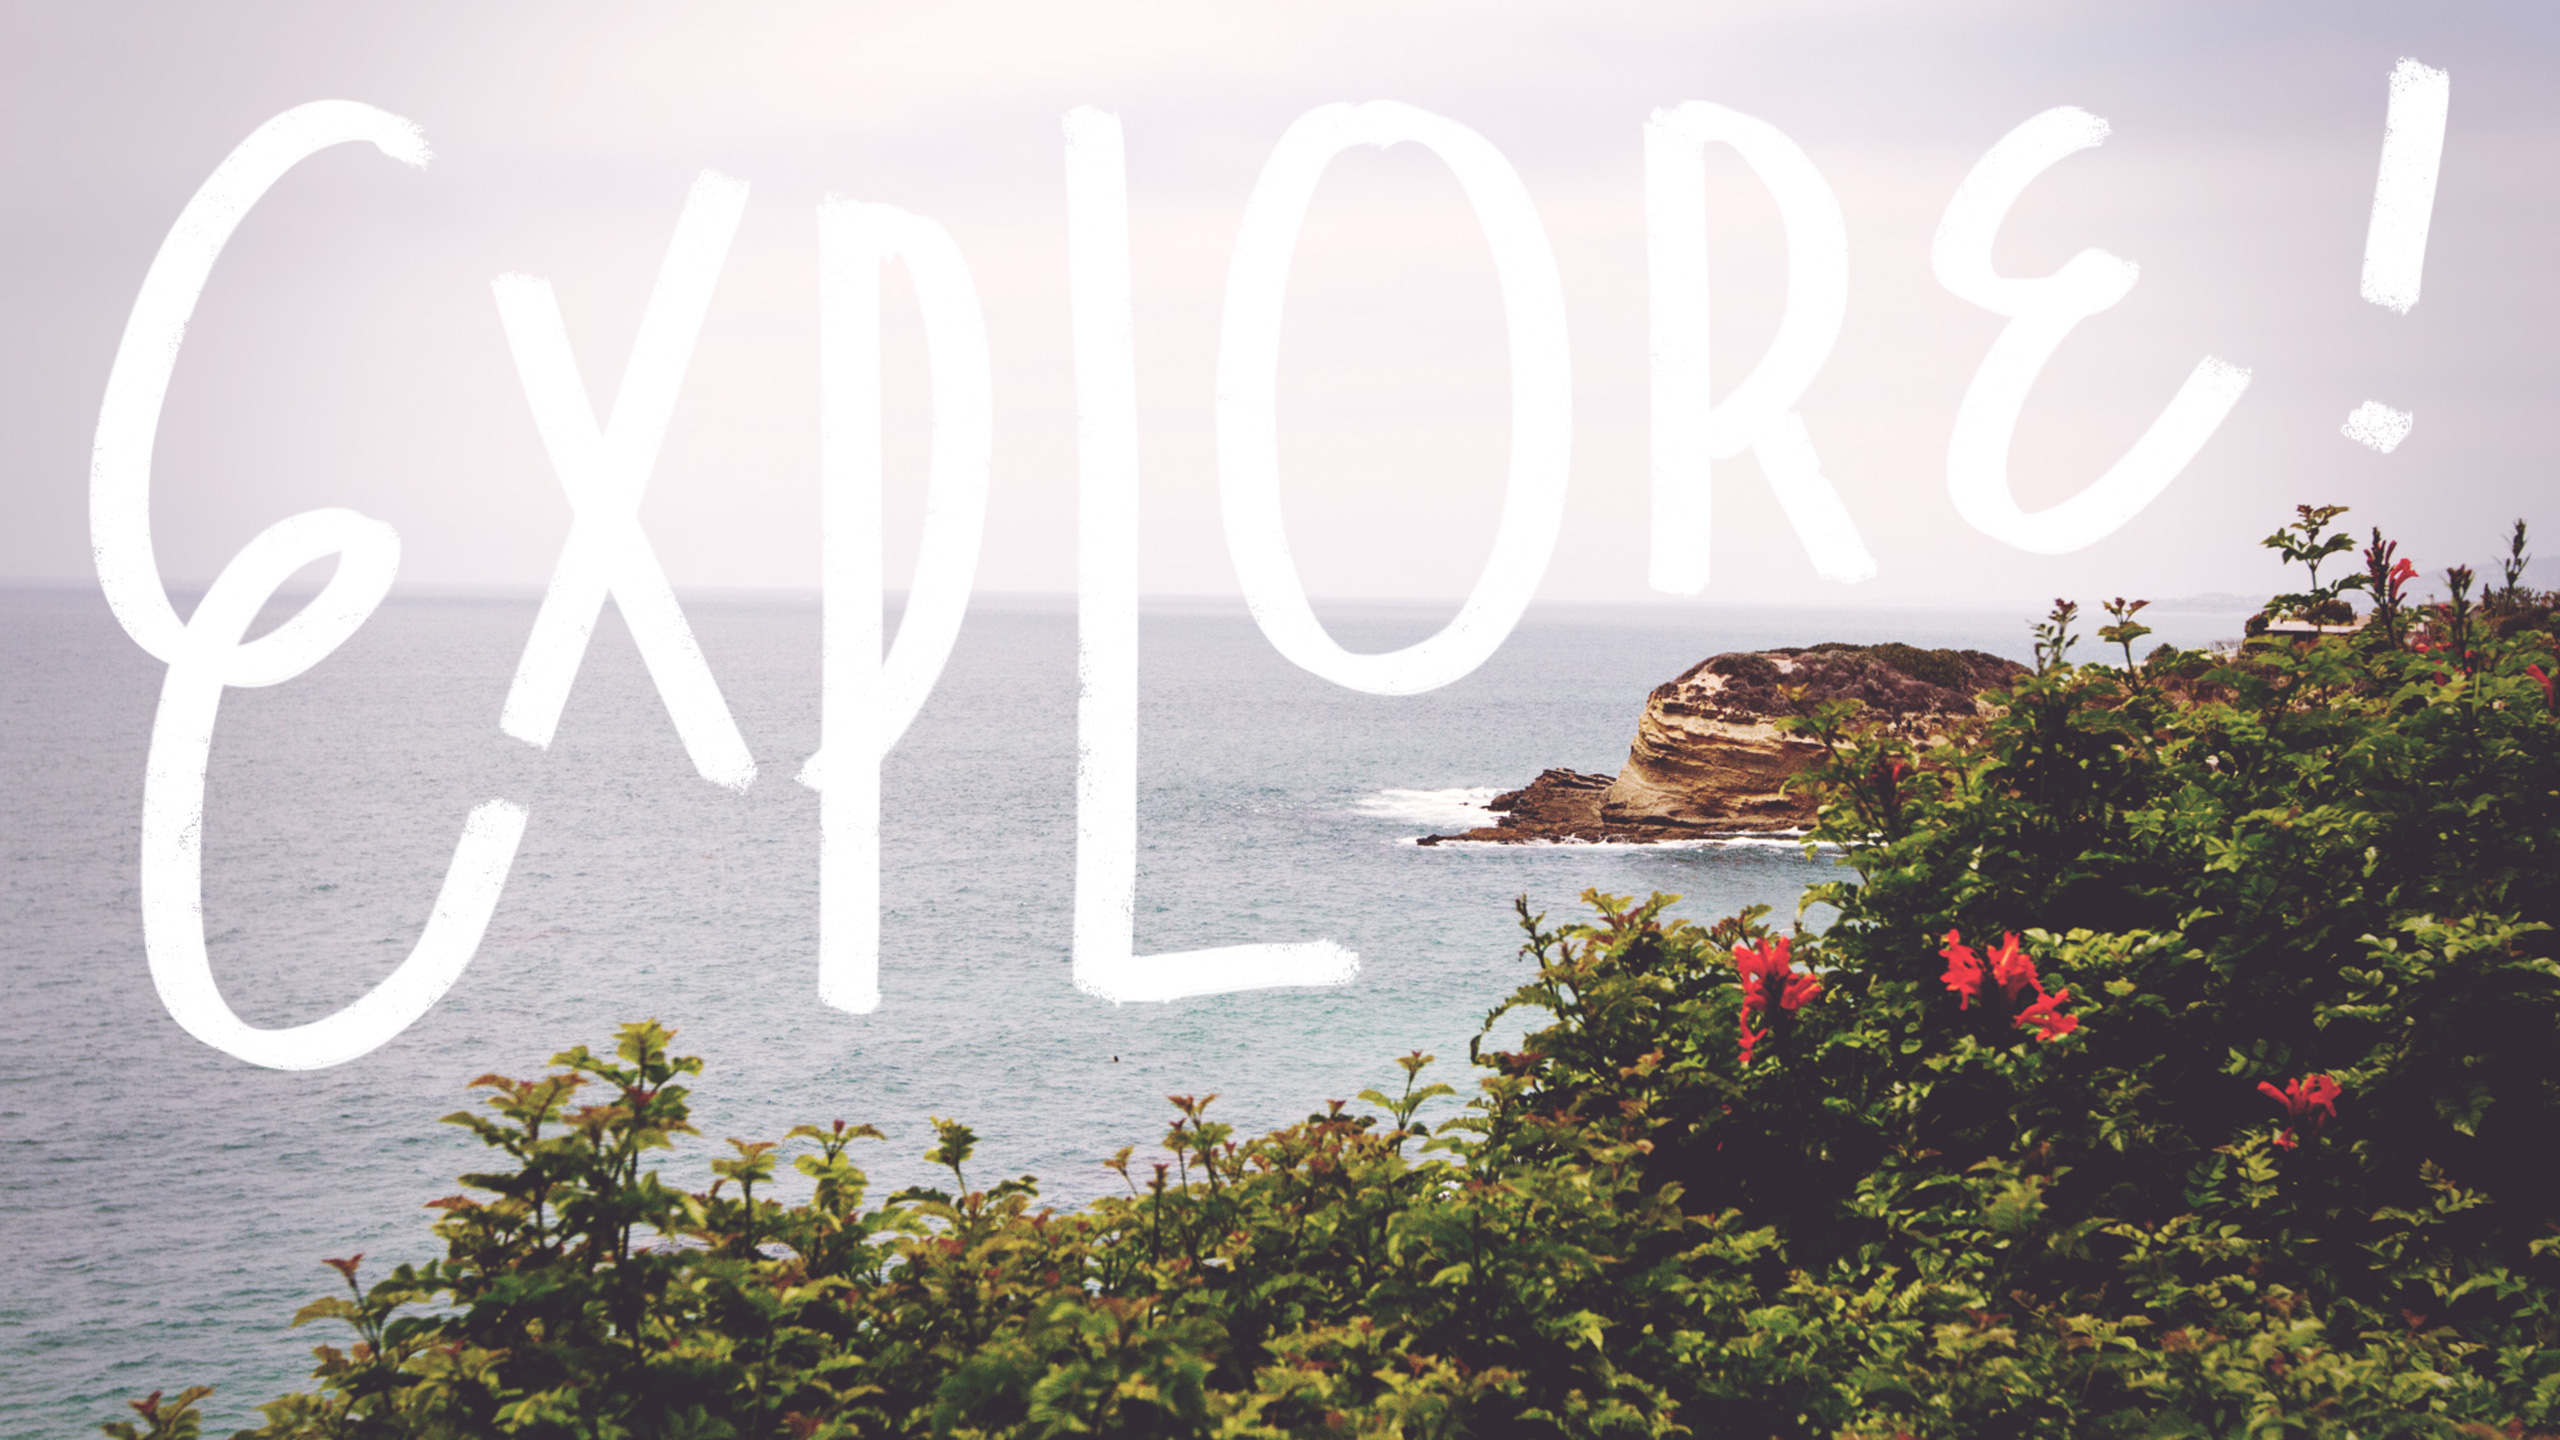 Explore wallpaper